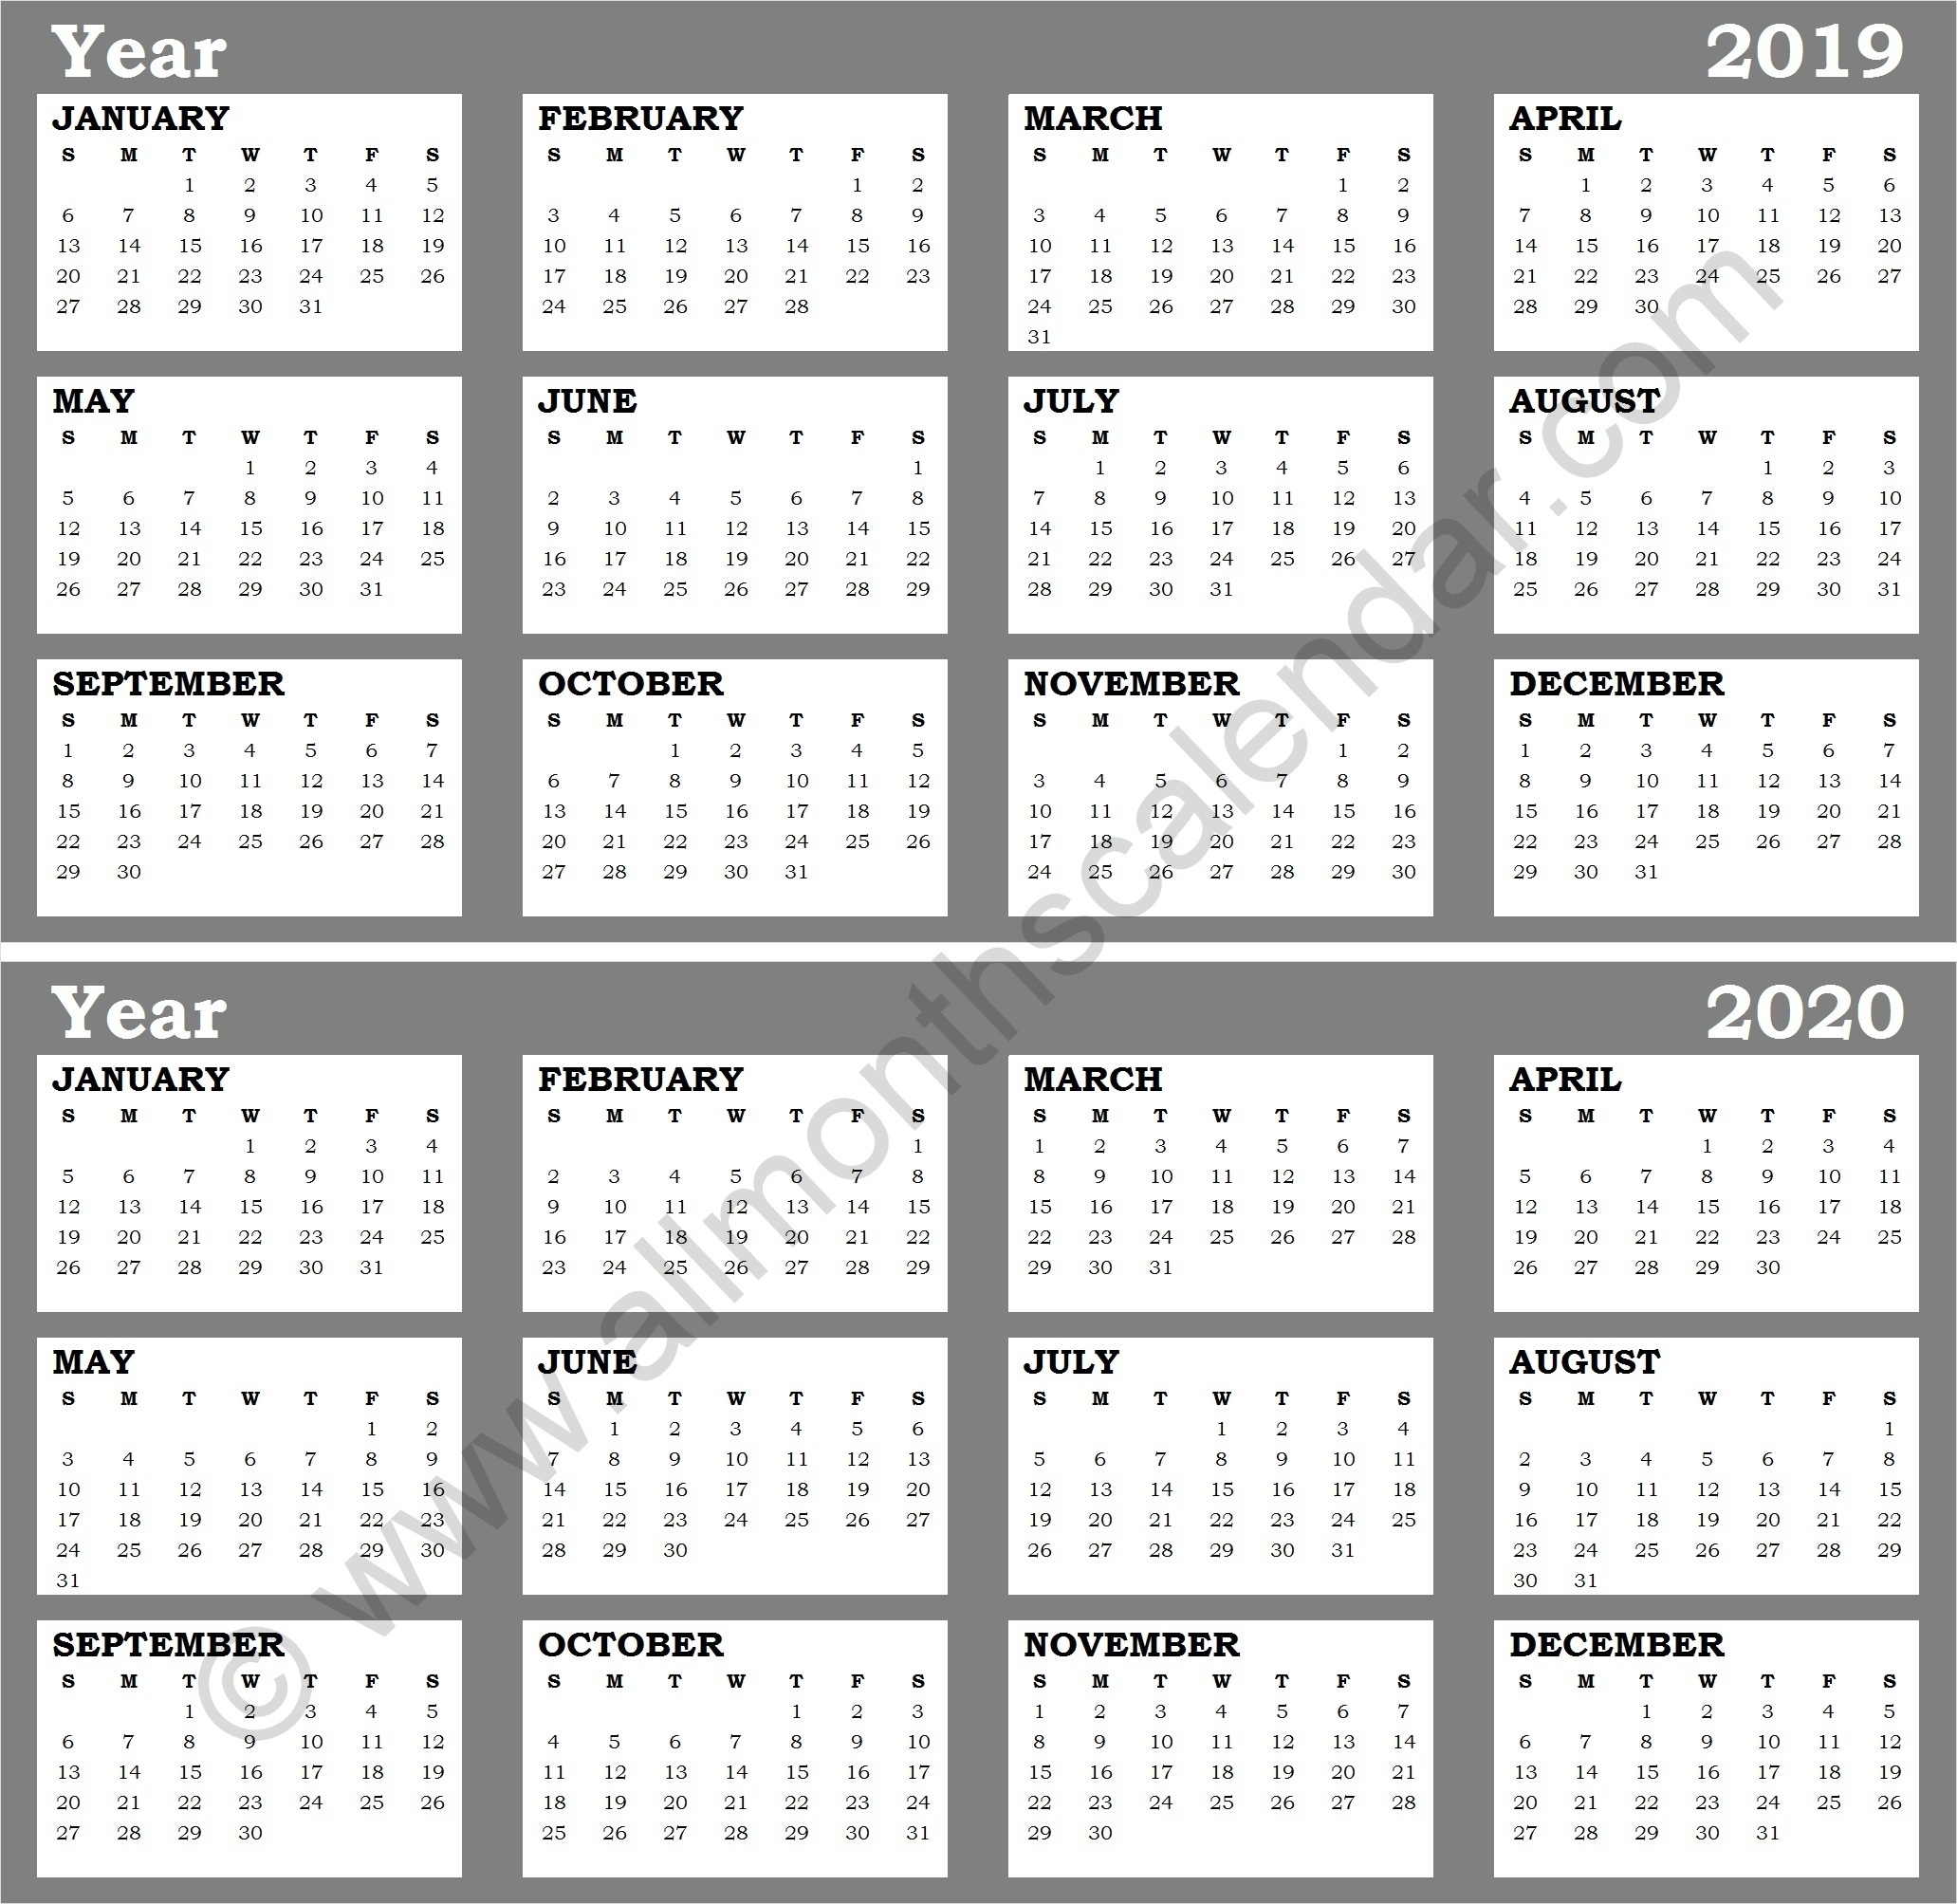 Blank Calendar Template 2019 To 2020 | Printable Blank Calendar Template within 2019 And 2020 Calendar Template Fill In